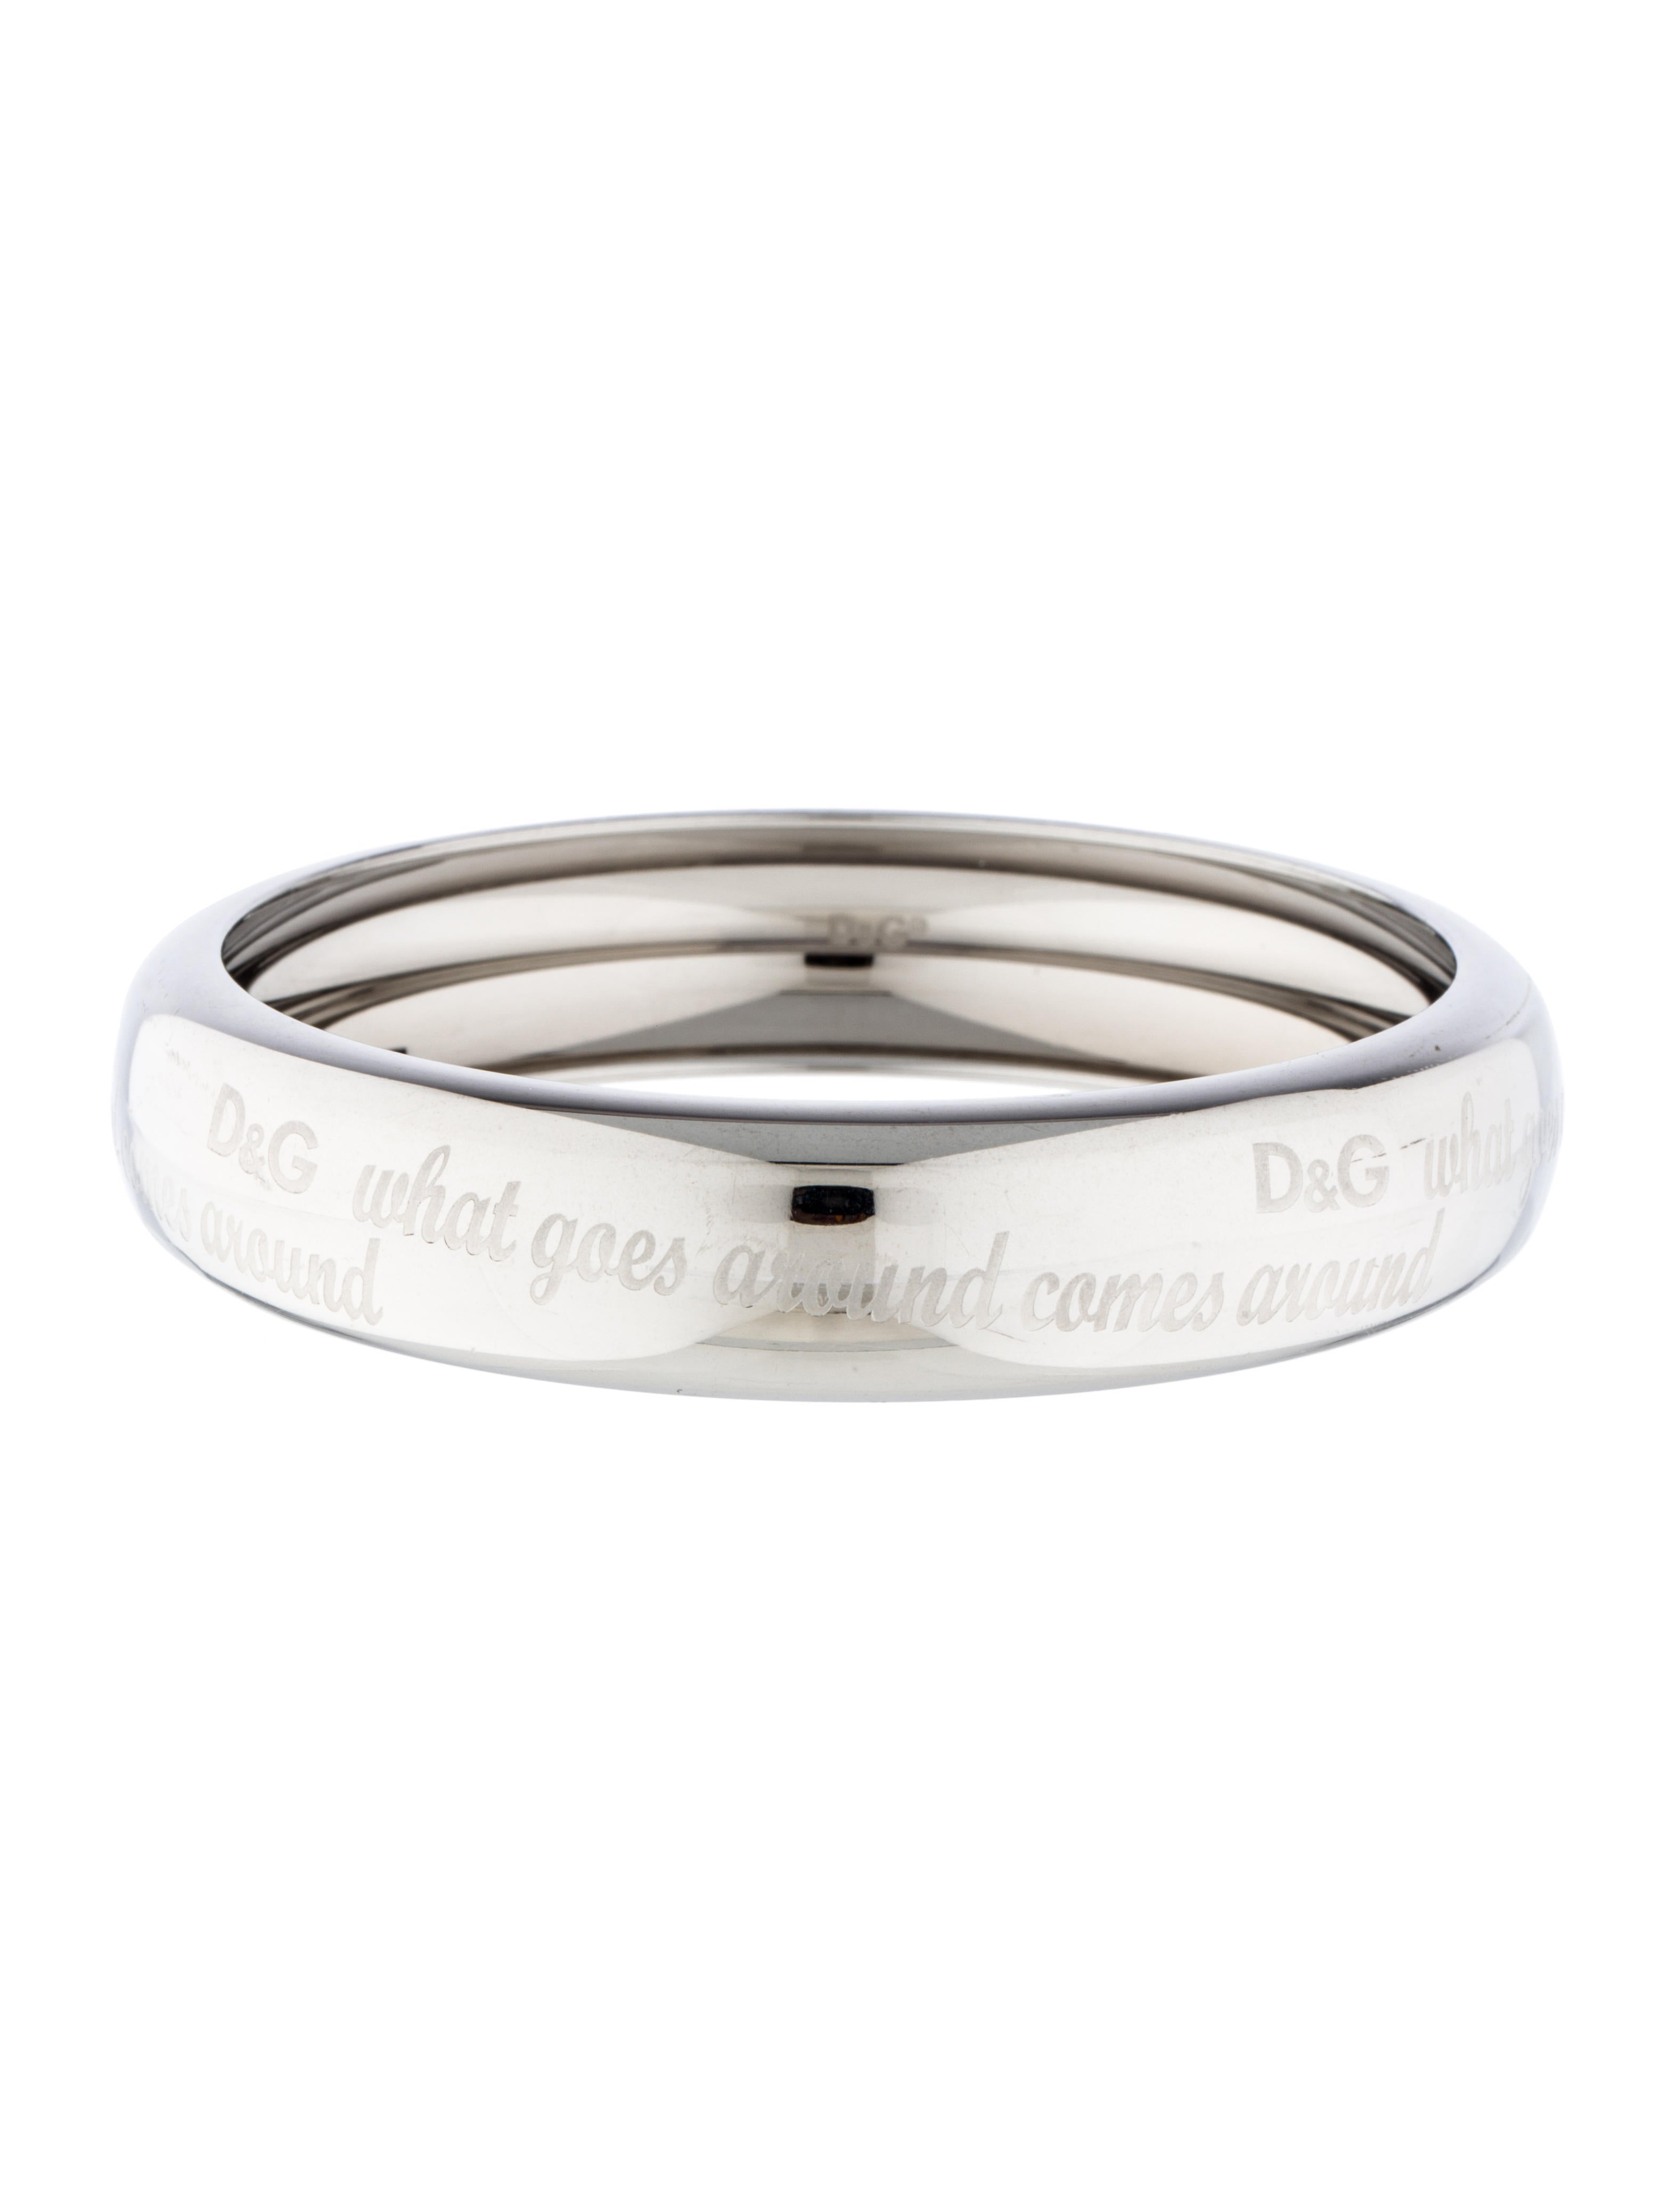 176395be80aa D G What Goes Around Comes Around Bangle - Bracelets - WDG34424 ...